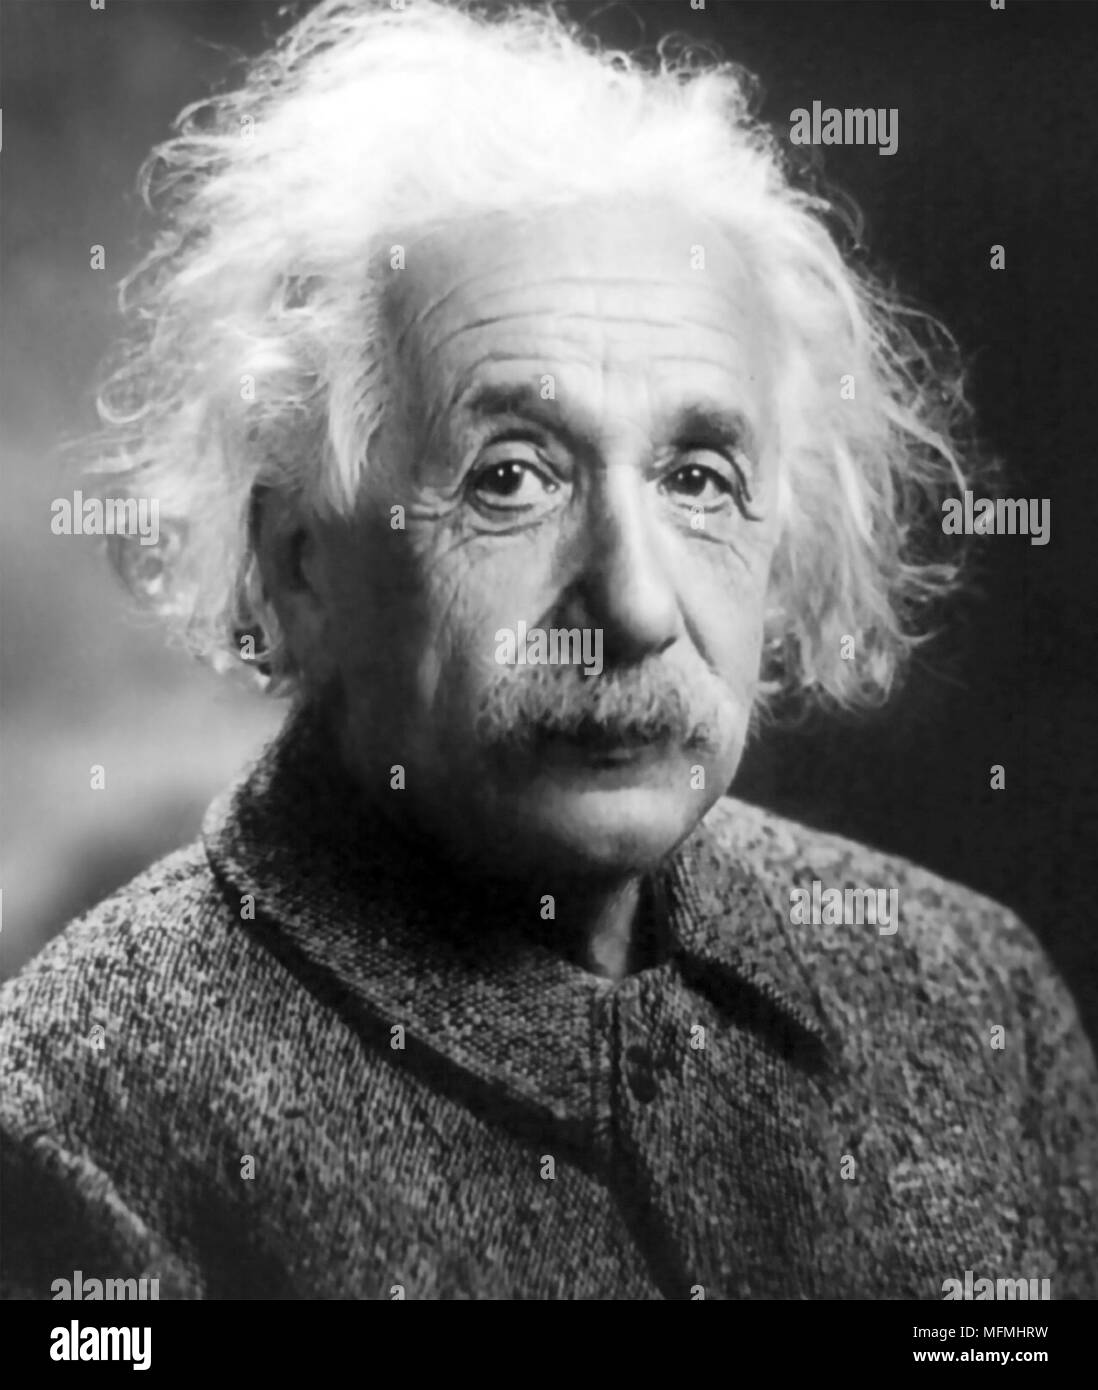 ALBERT EINSTEIN (1879-1955) German-American theoretical physicist in 1947 - Stock Image